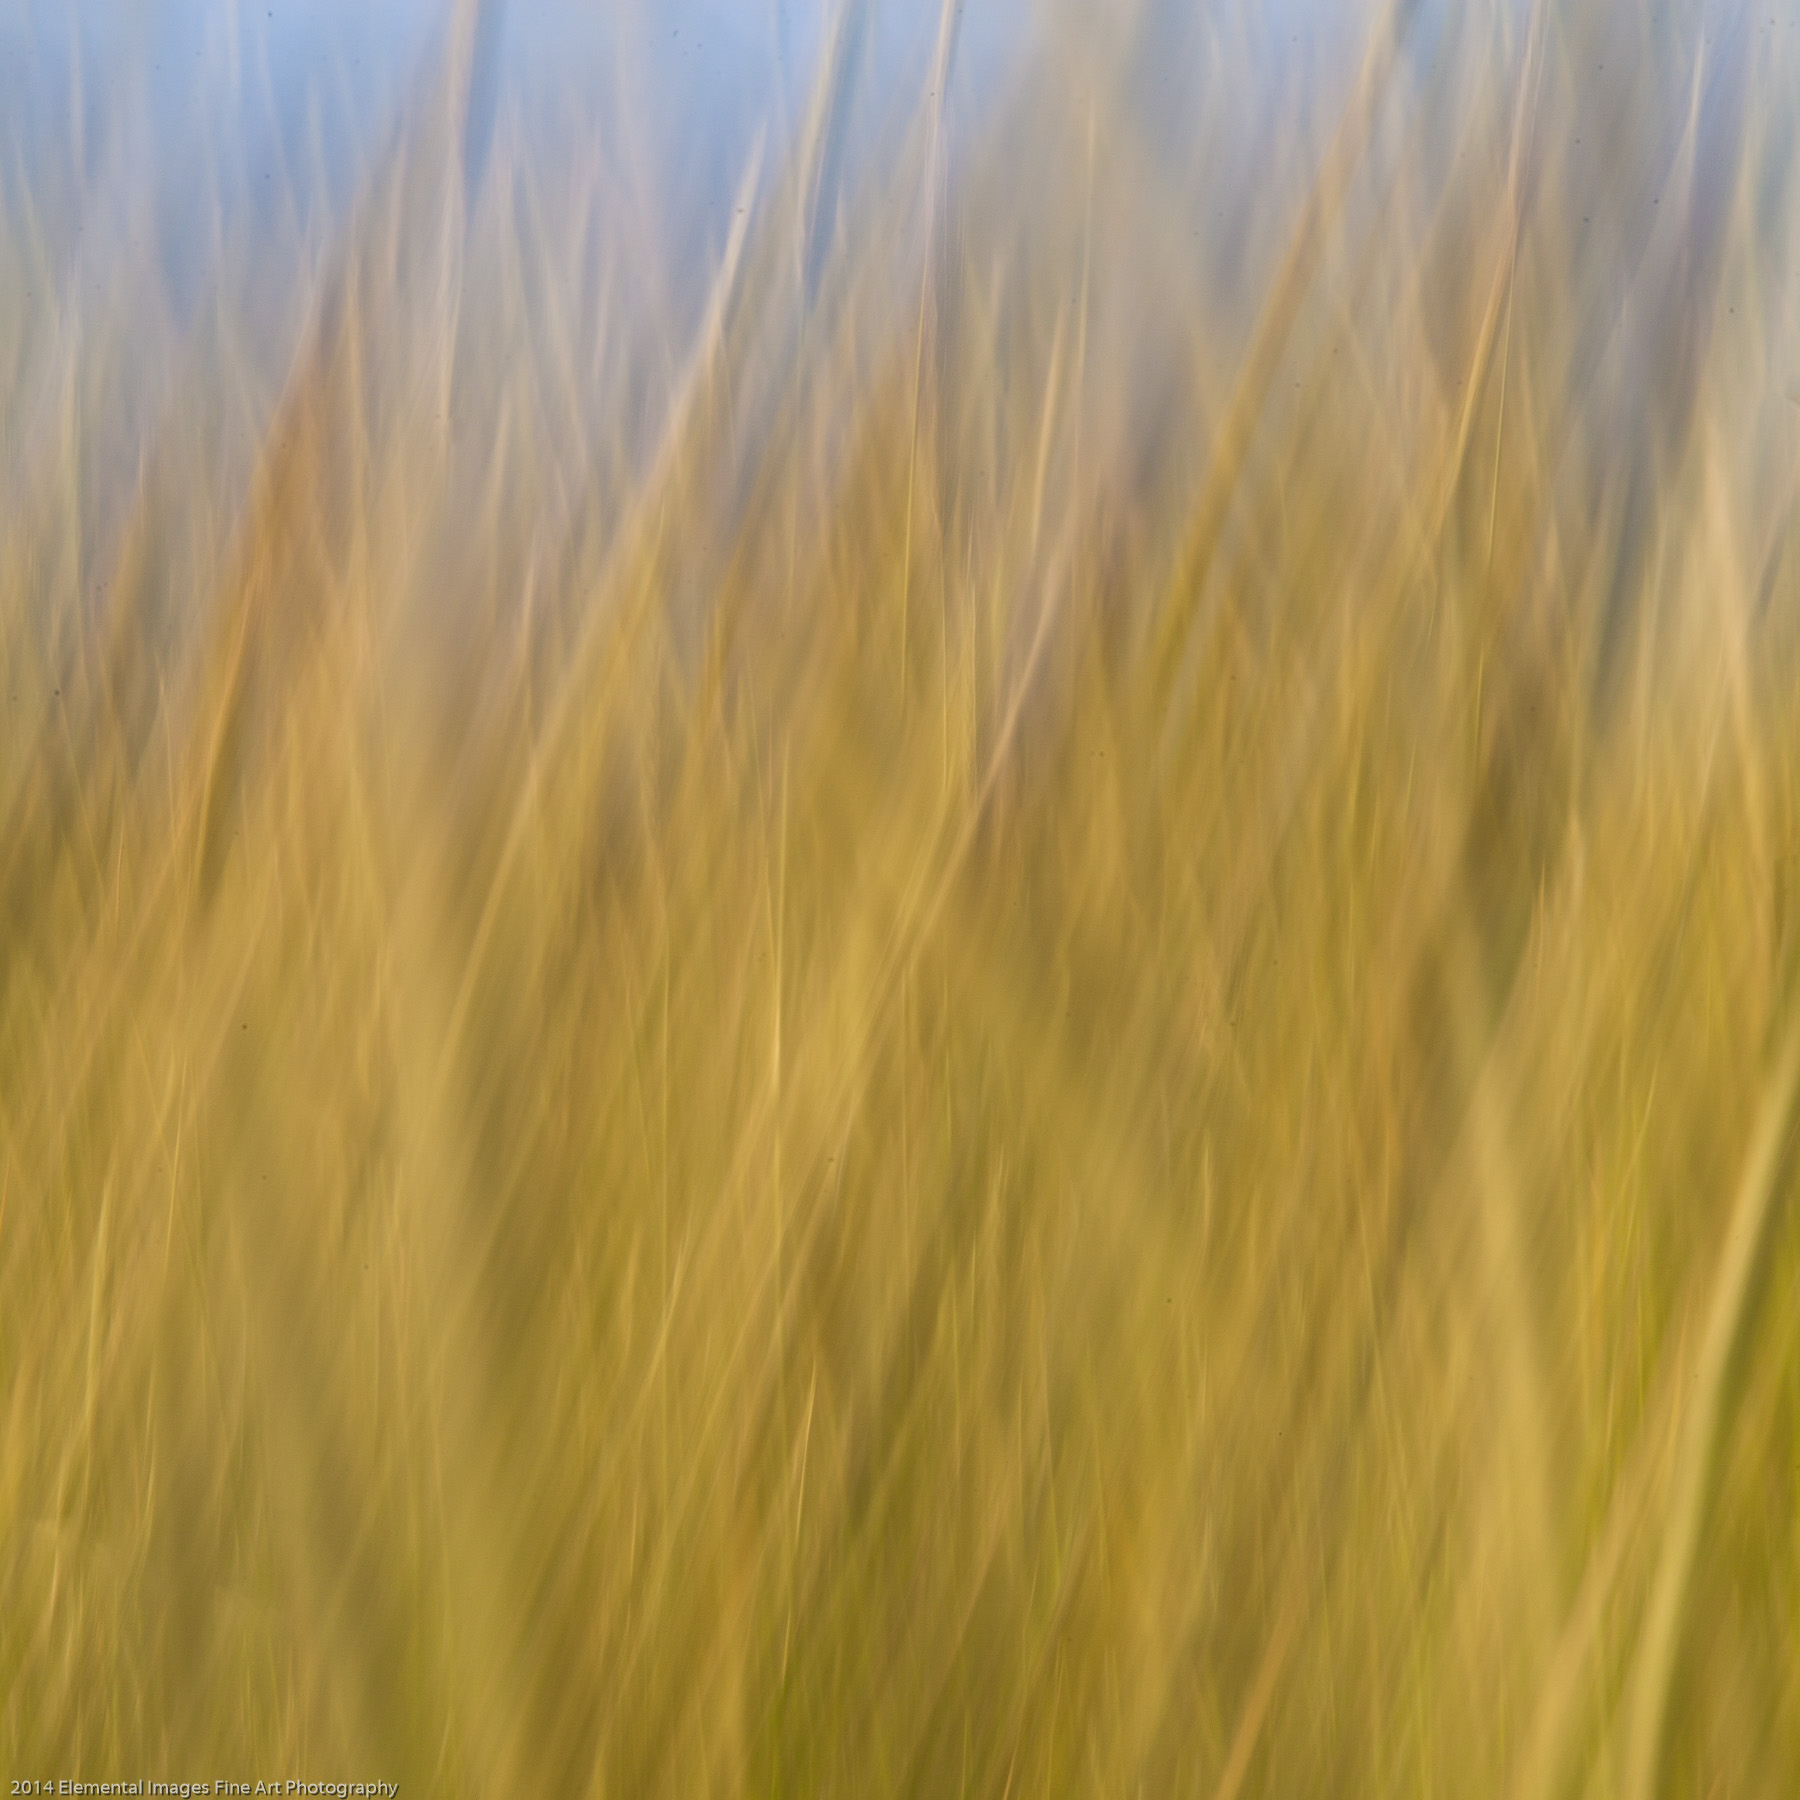 Grasses CIX | The Palouse | WA | USA - © 2014 Elemental Images Fine Art Photography - All Rights Reserved Worldwide